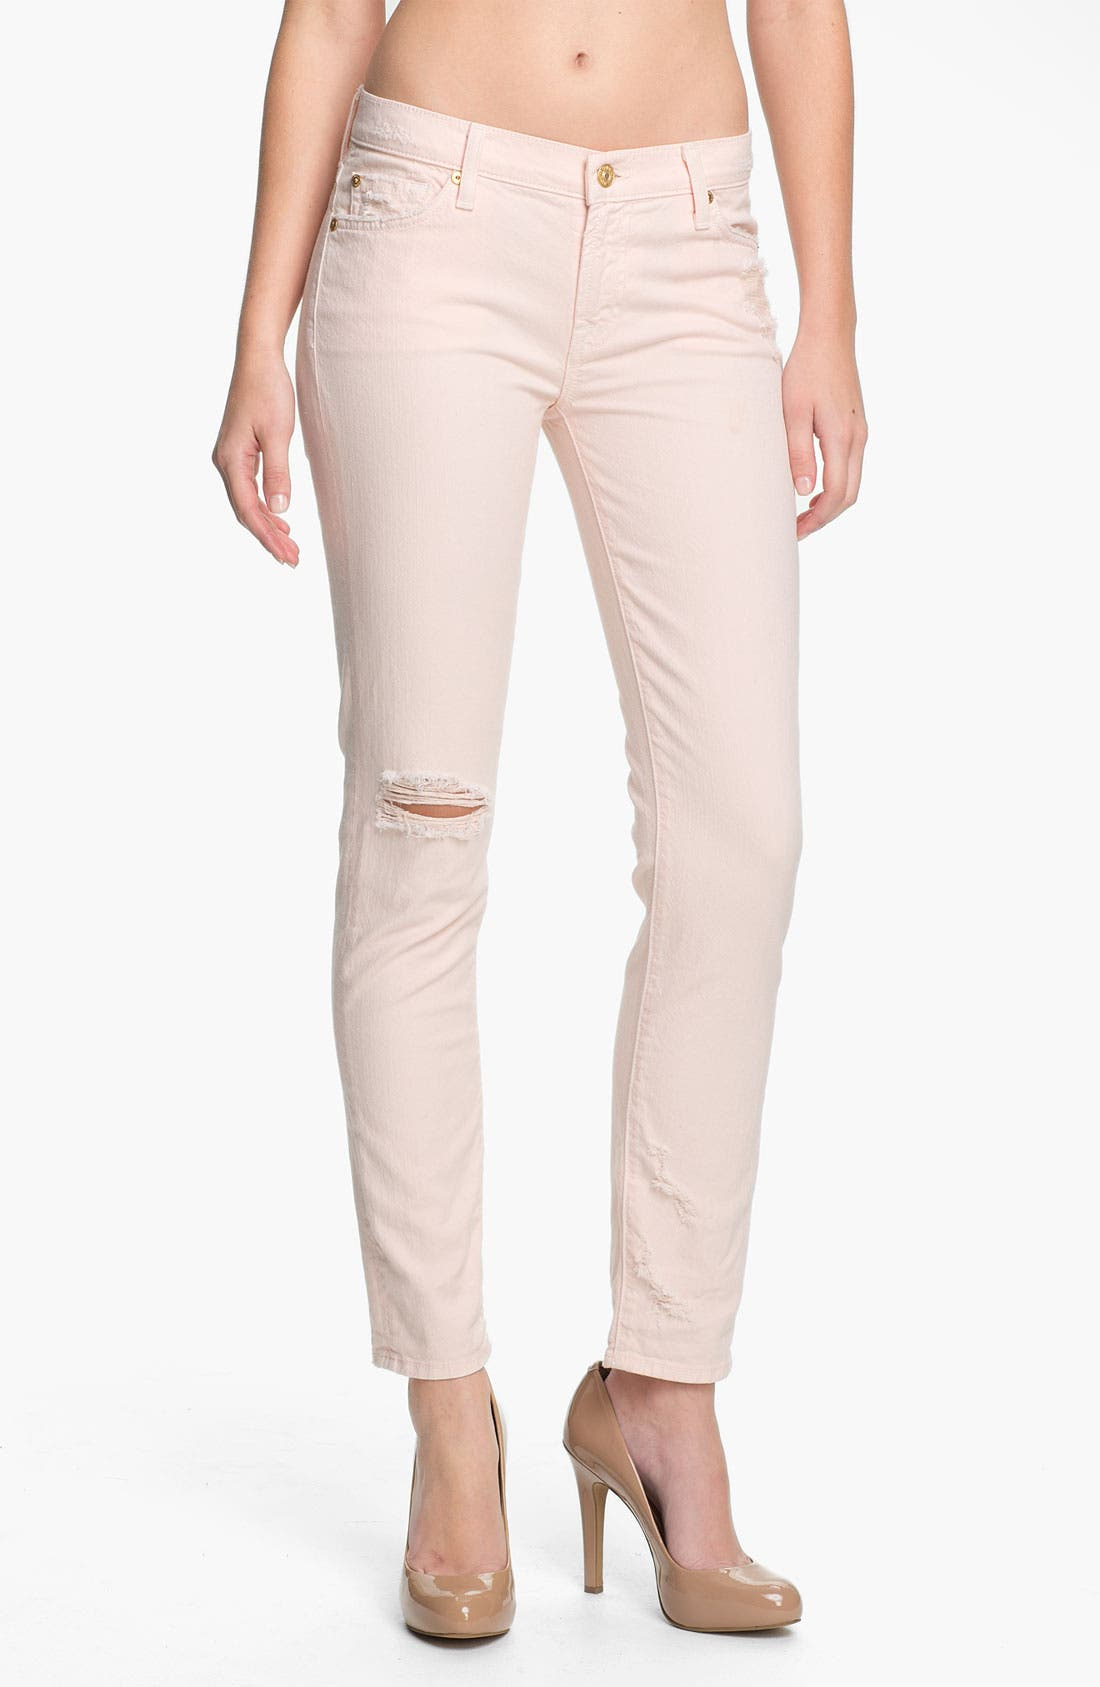 Alternate Image 1 Selected - 7 For All Mankind® 'The Slim Cigarette' Stretch Jeans (Ballet Pink)